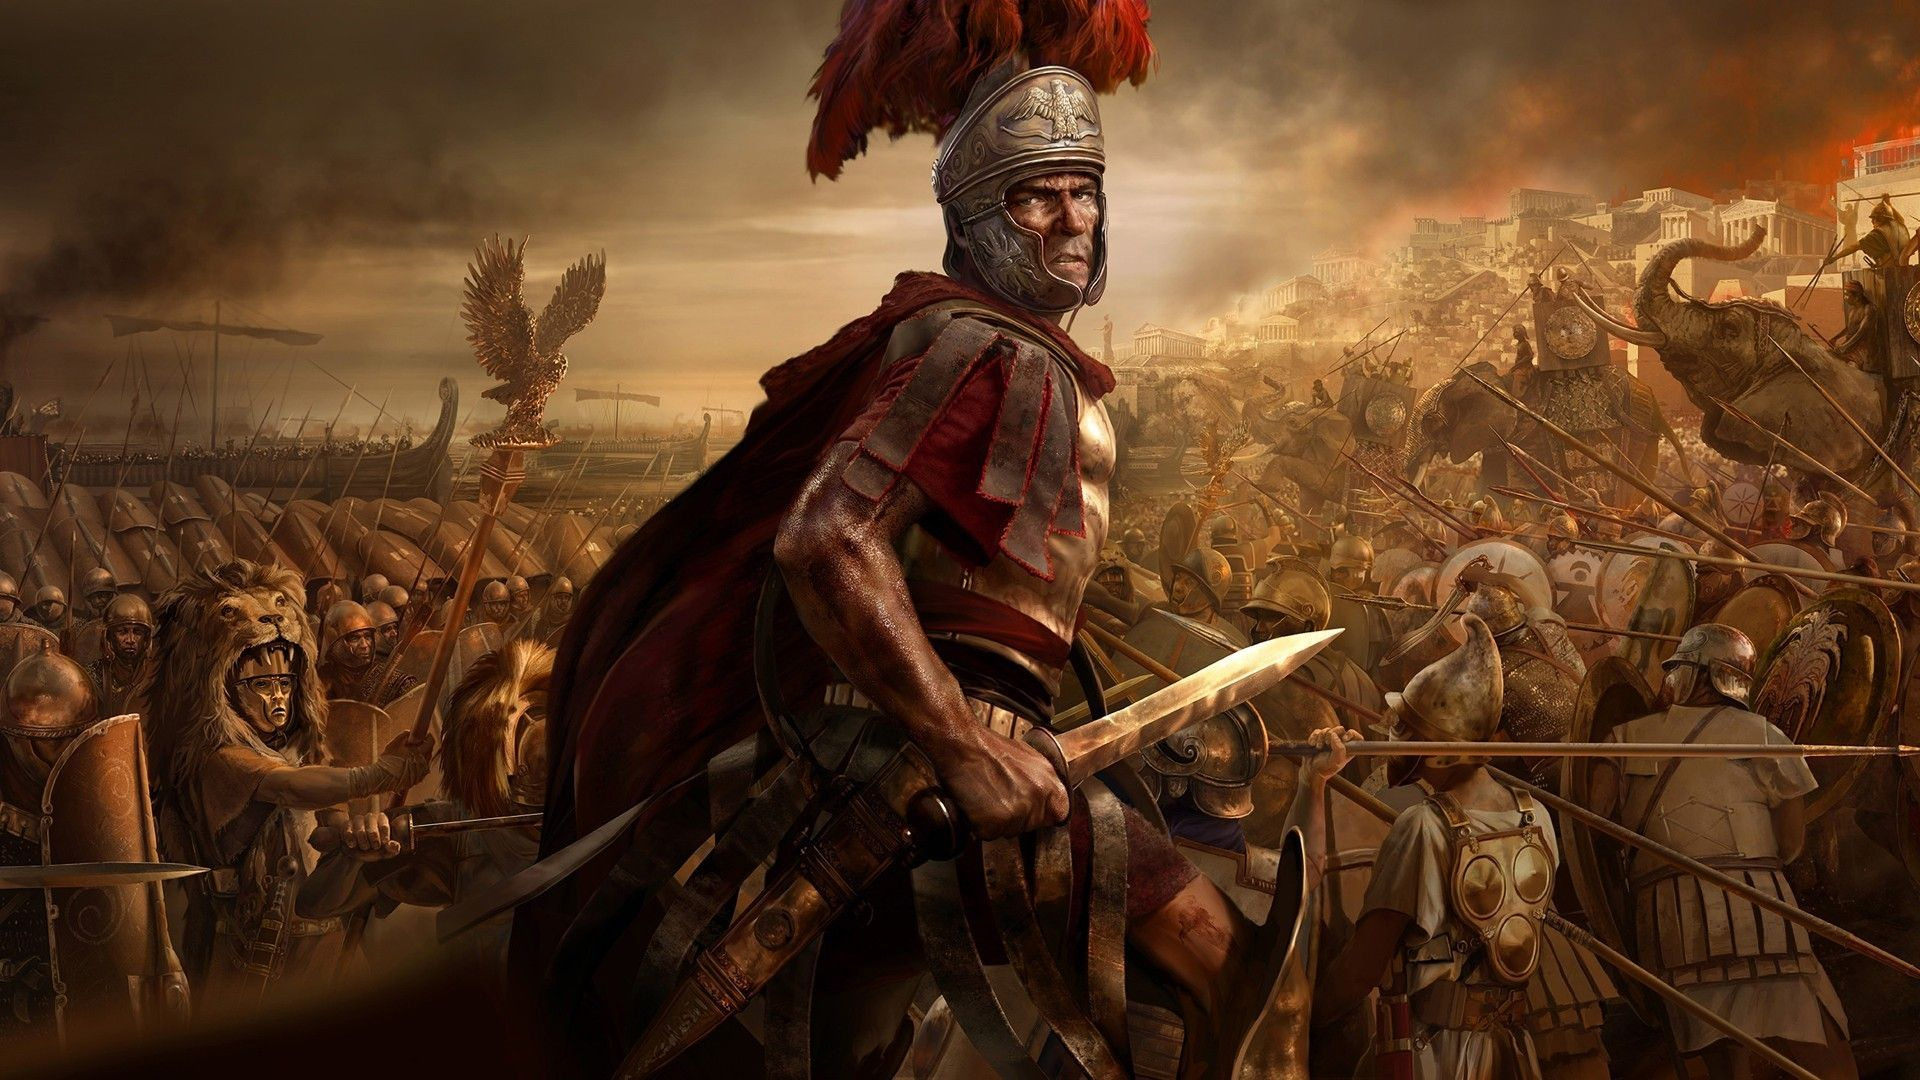 Roman Soldier Wallpapers   Top Roman Soldier Backgrounds 1920x1080